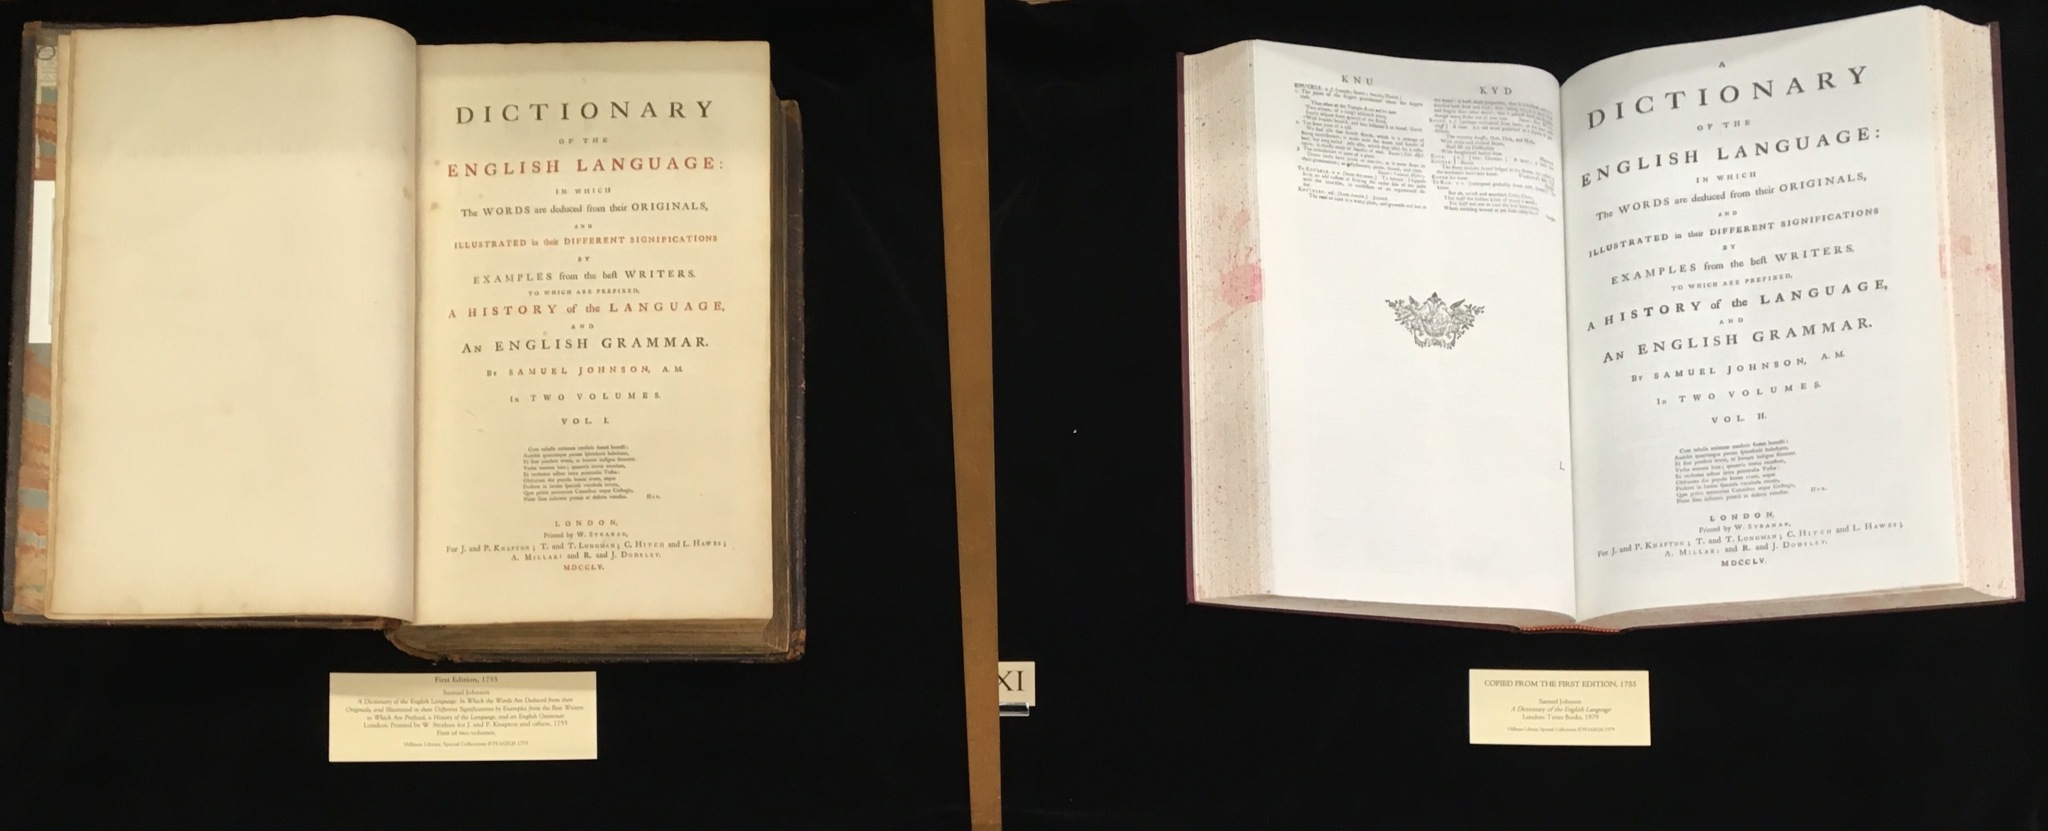 A display case showing the two dictionaries listed on this page.